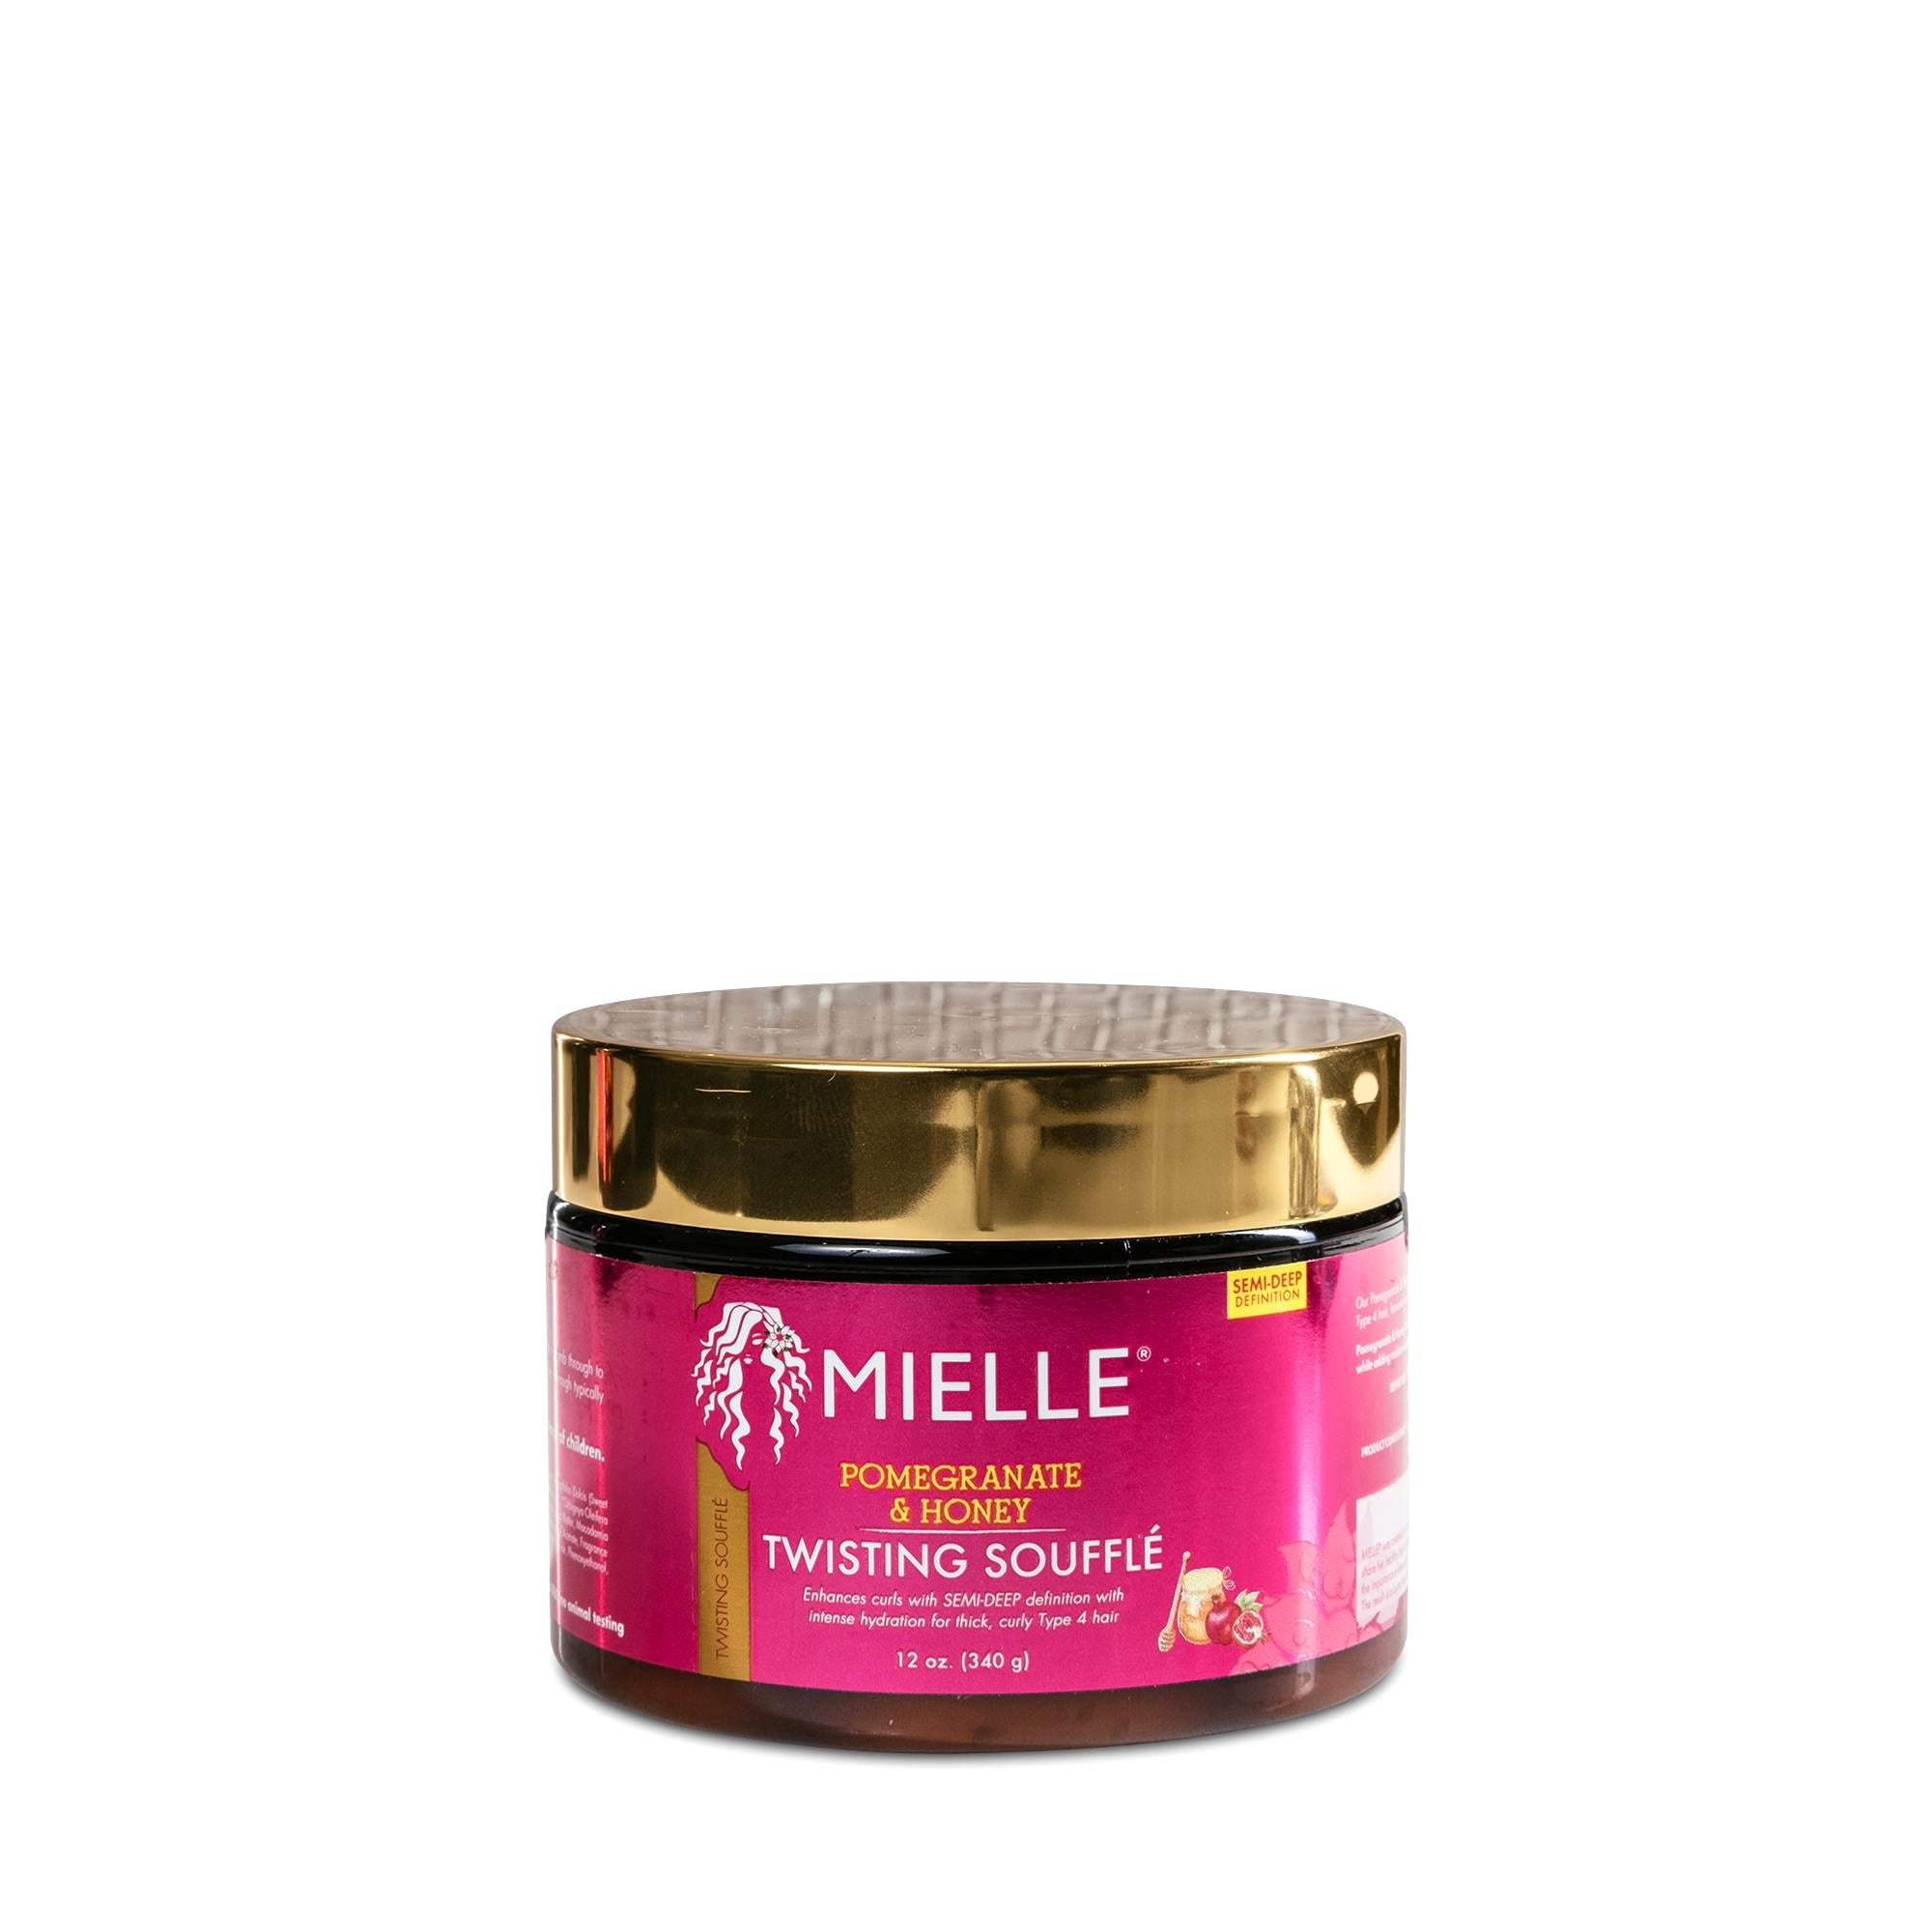 Mielle Organics Pomegranate & Honey Twisting Soufflé - 12 oz